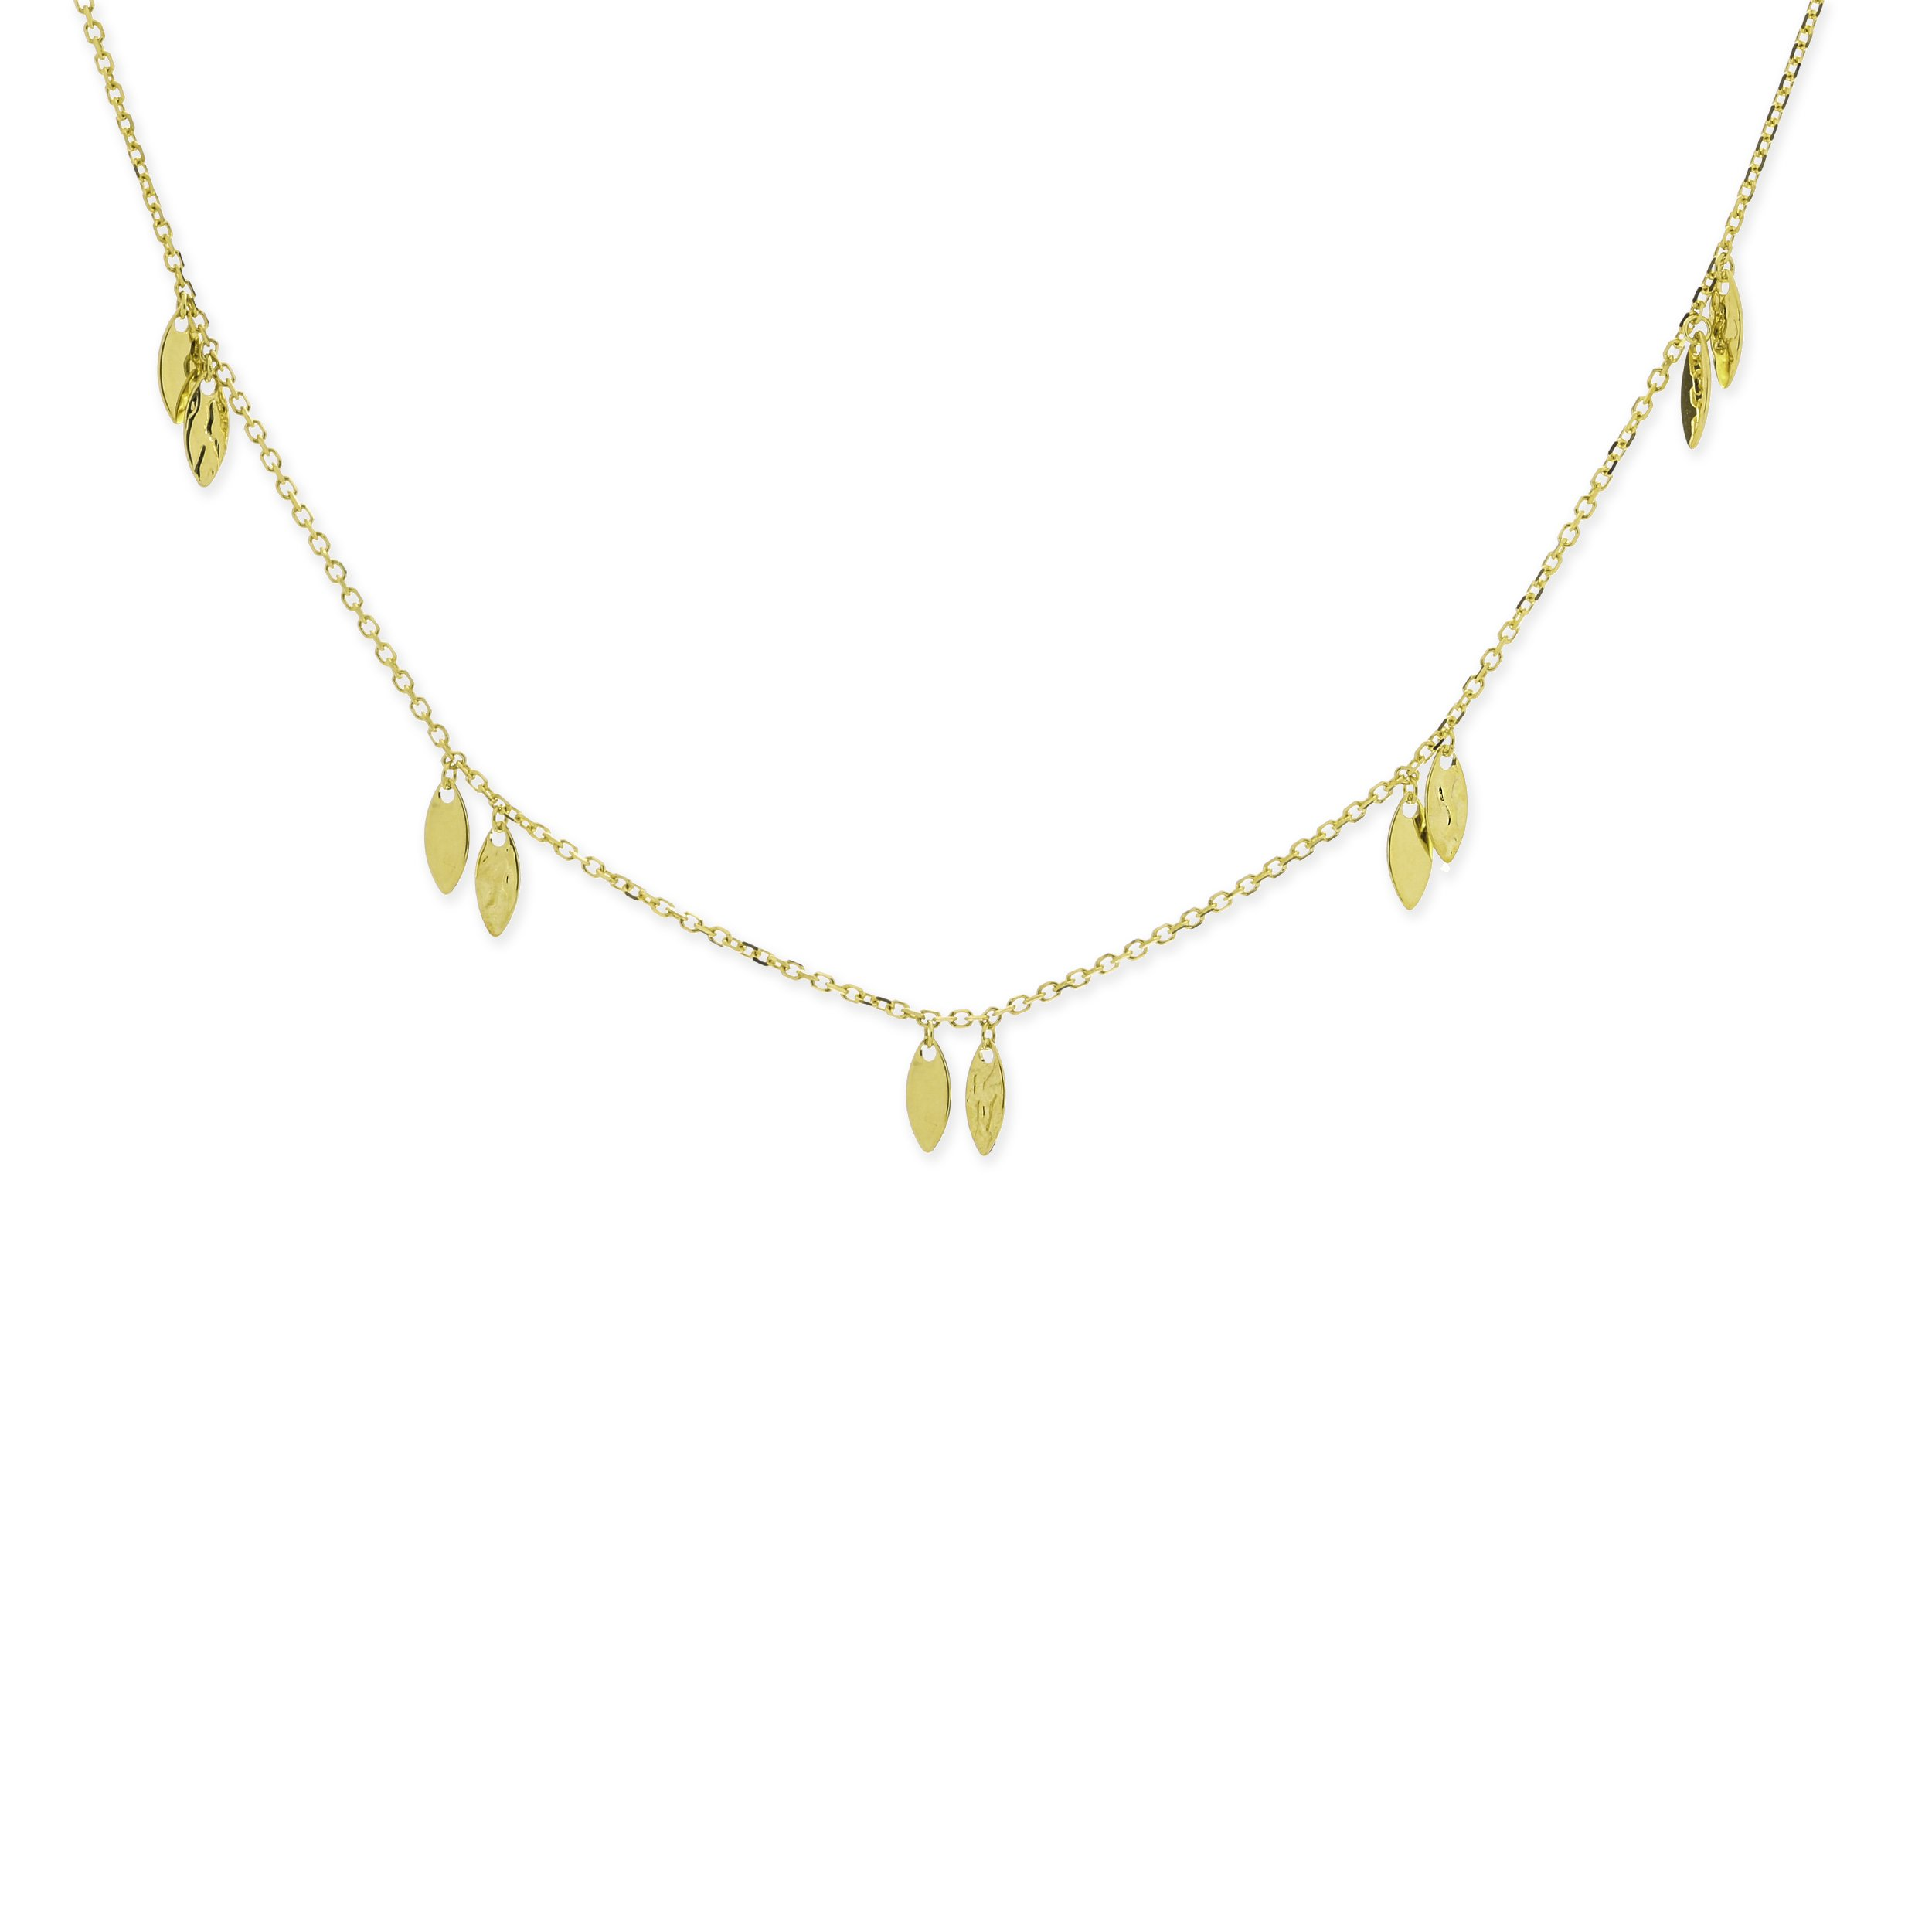 14k Yellow Gold Necklace Marquise-shape Hammered and Polished Drops Adjustable